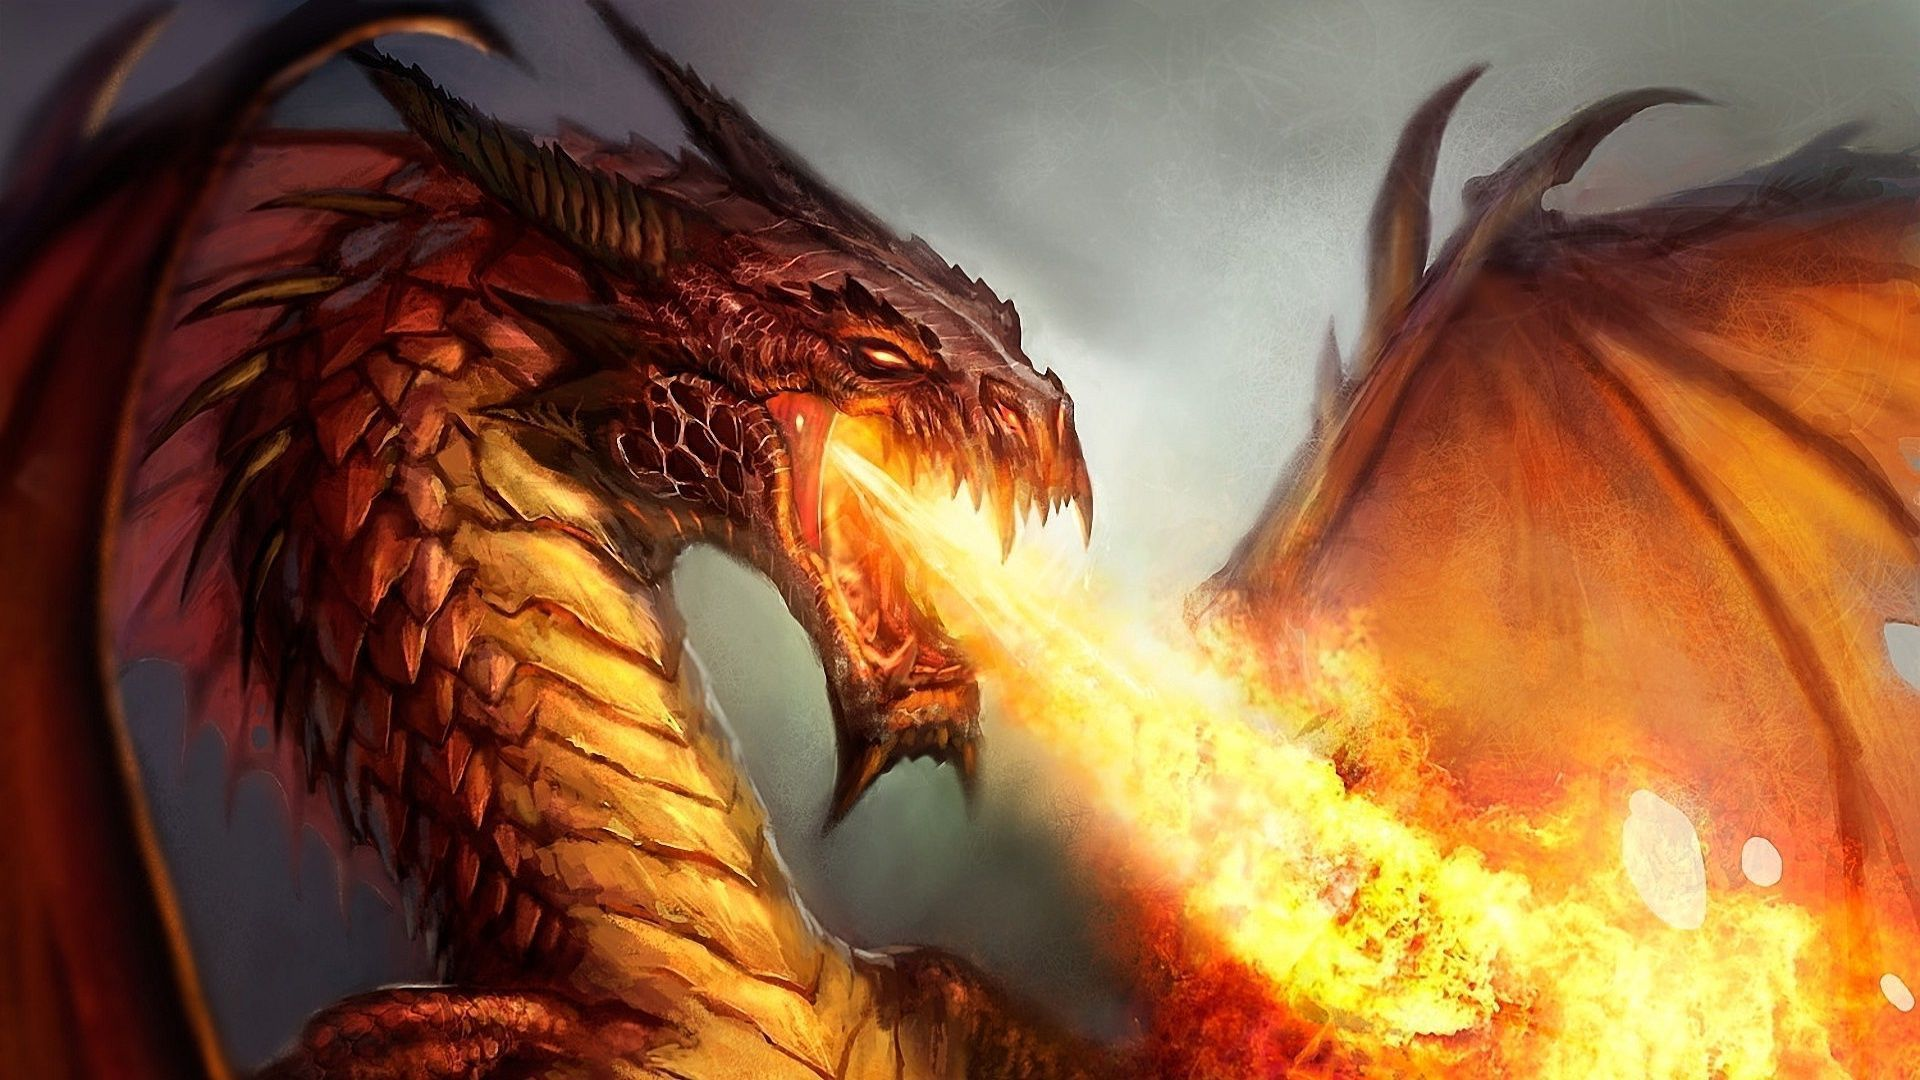 dreamy fantasy wallpaper fire dragon wallpapers hd free